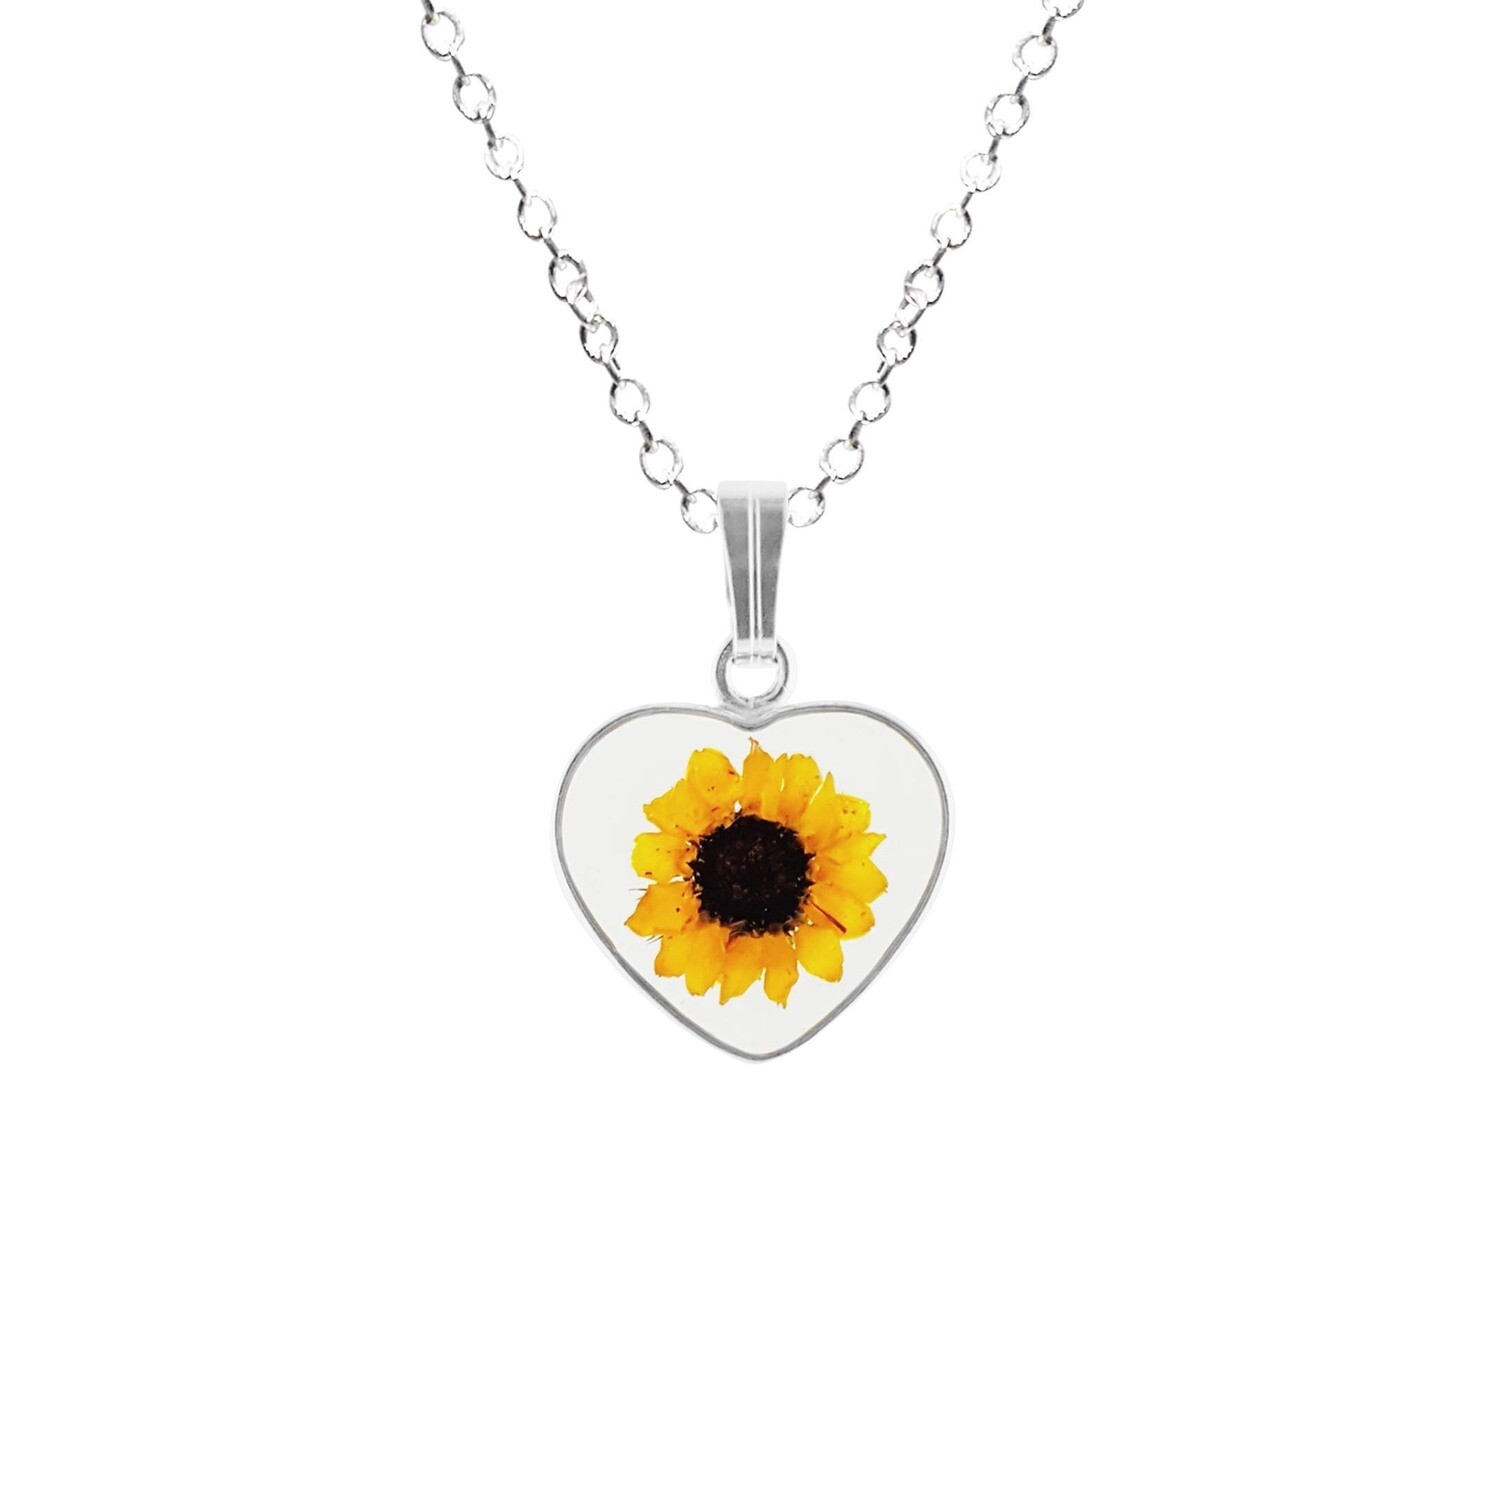 Sunflower Necklace, Small Heart, Transparent